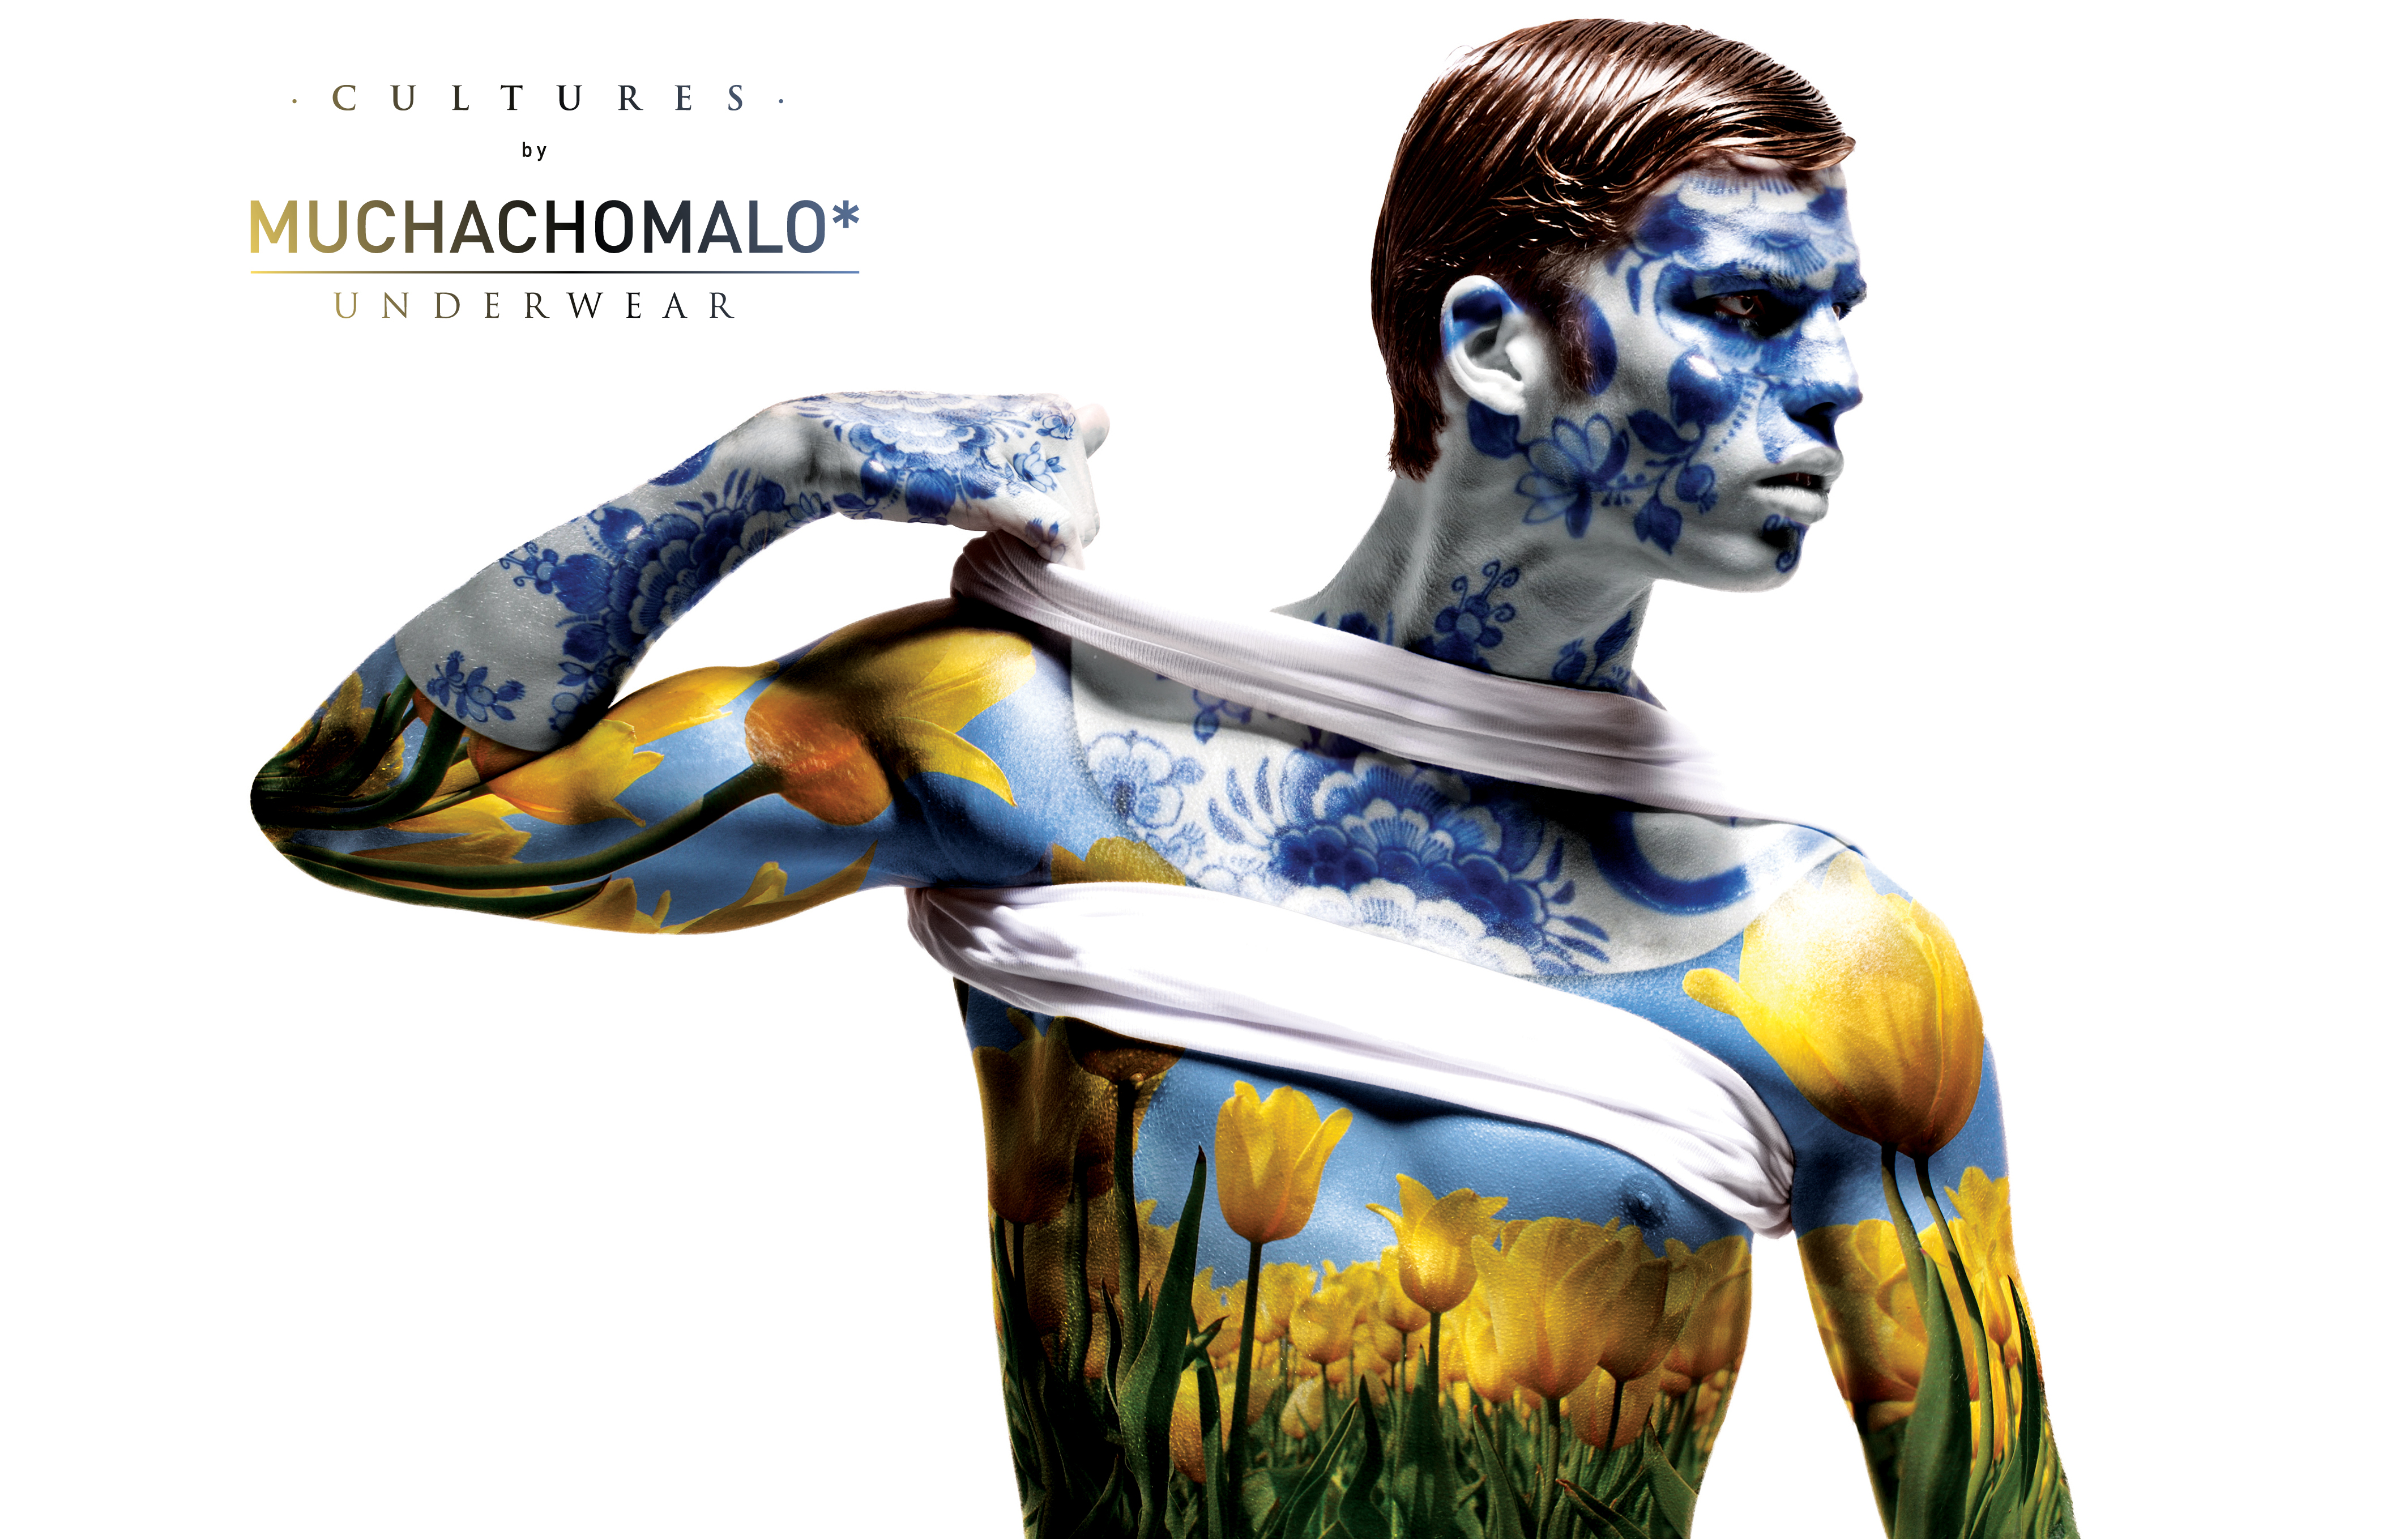 muchachomalo_cultures_ss12_netherlands2